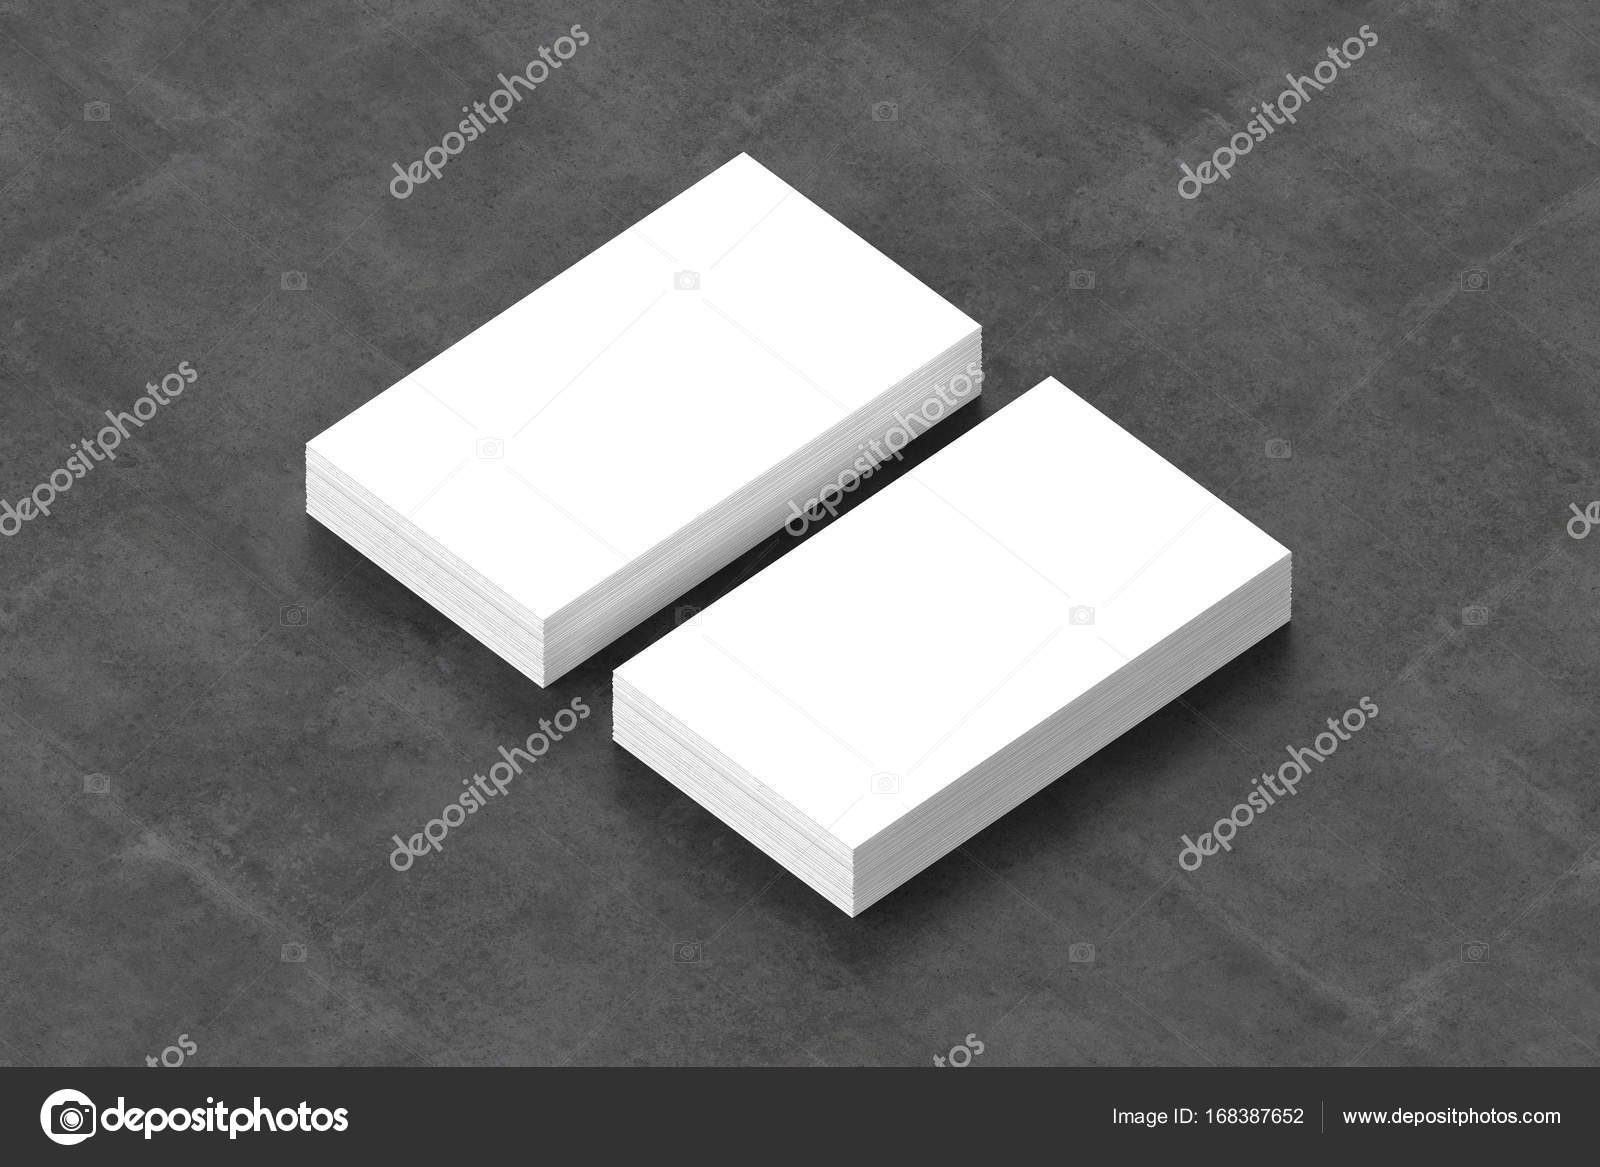 Business cards blank mockup template 3d illustration stock business cards blank mockup template 3d illustration photo by daliborzivotic flashek Gallery